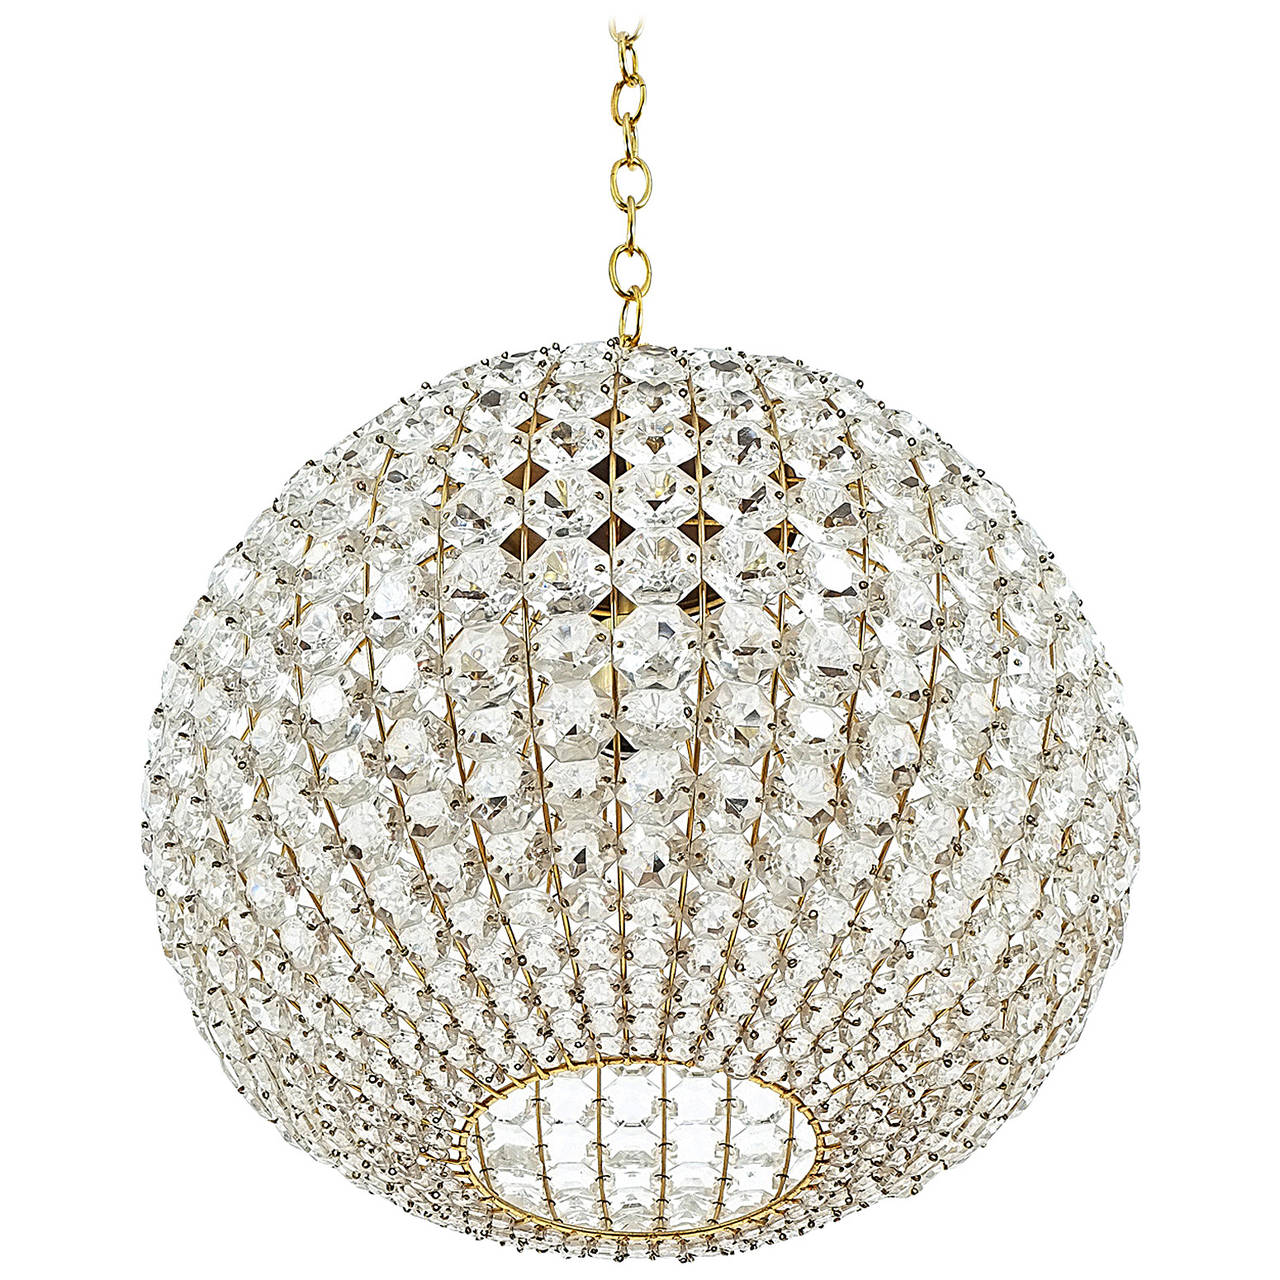 Large ball shaped crystal chandelier lamp austria circa 1960 for large ball shaped crystal chandelier lamp austria circa 1960 for sale aloadofball Image collections